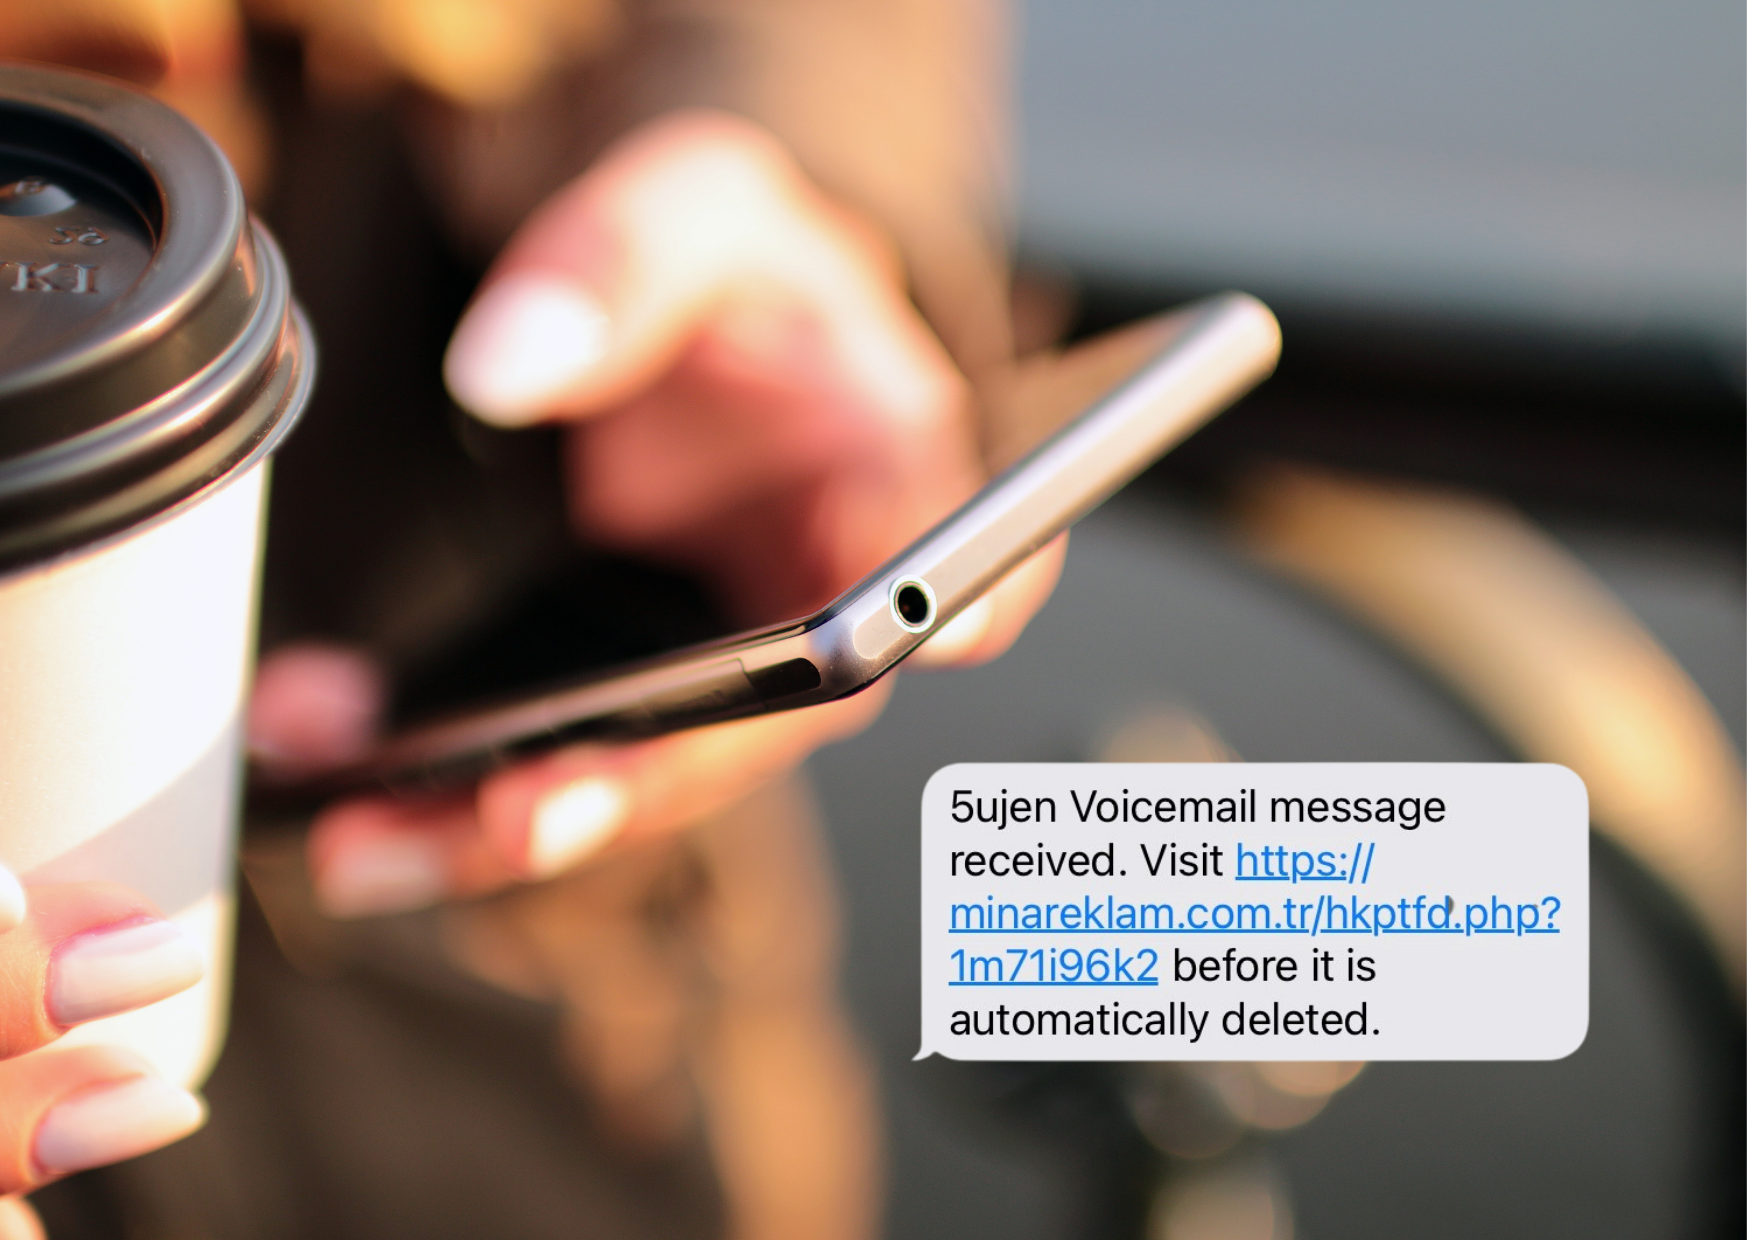 The Bizarre FluBot SMS Scam - What You Need to Know